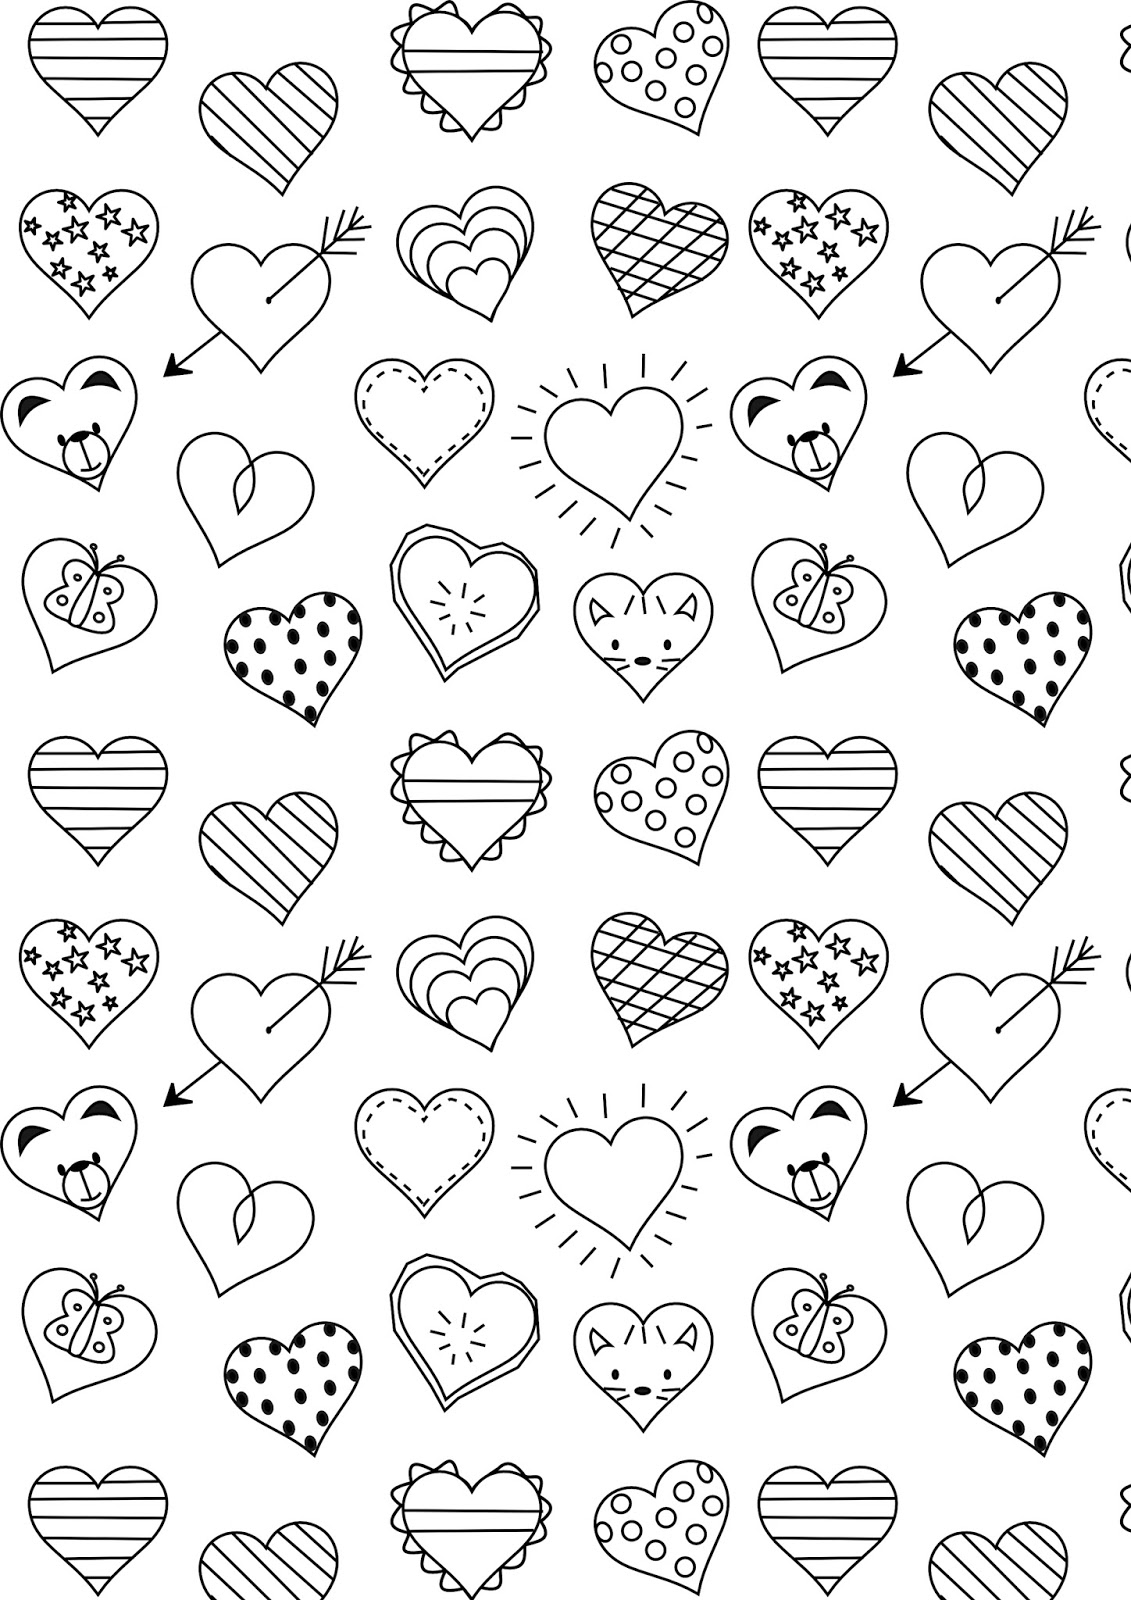 hearts to colour in free printable heart coloring page ausdruckbare in colour hearts to